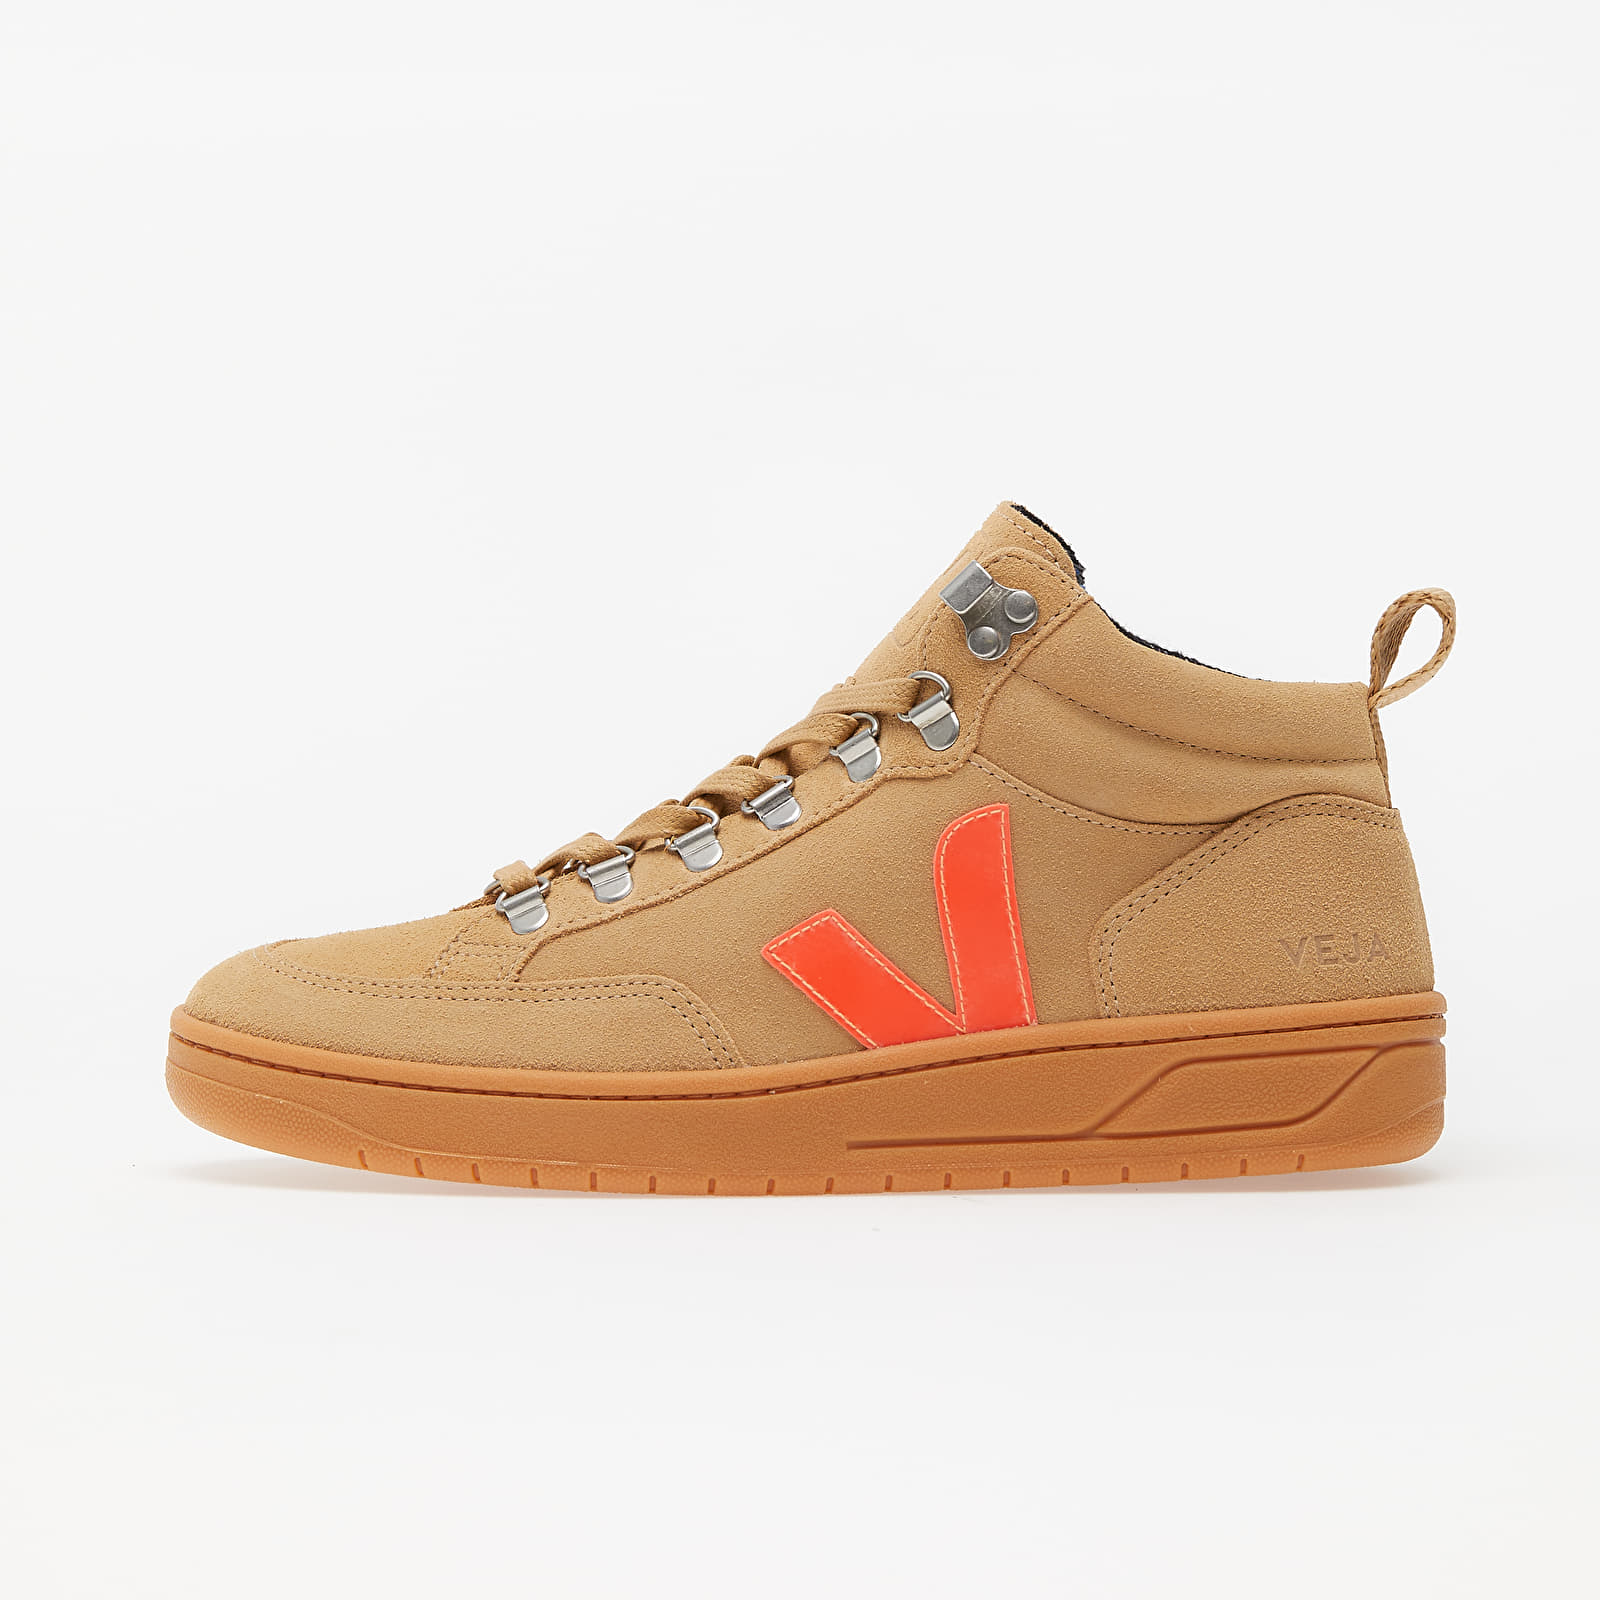 Veja Roraima W Light/ Pastel Brown QR032385A